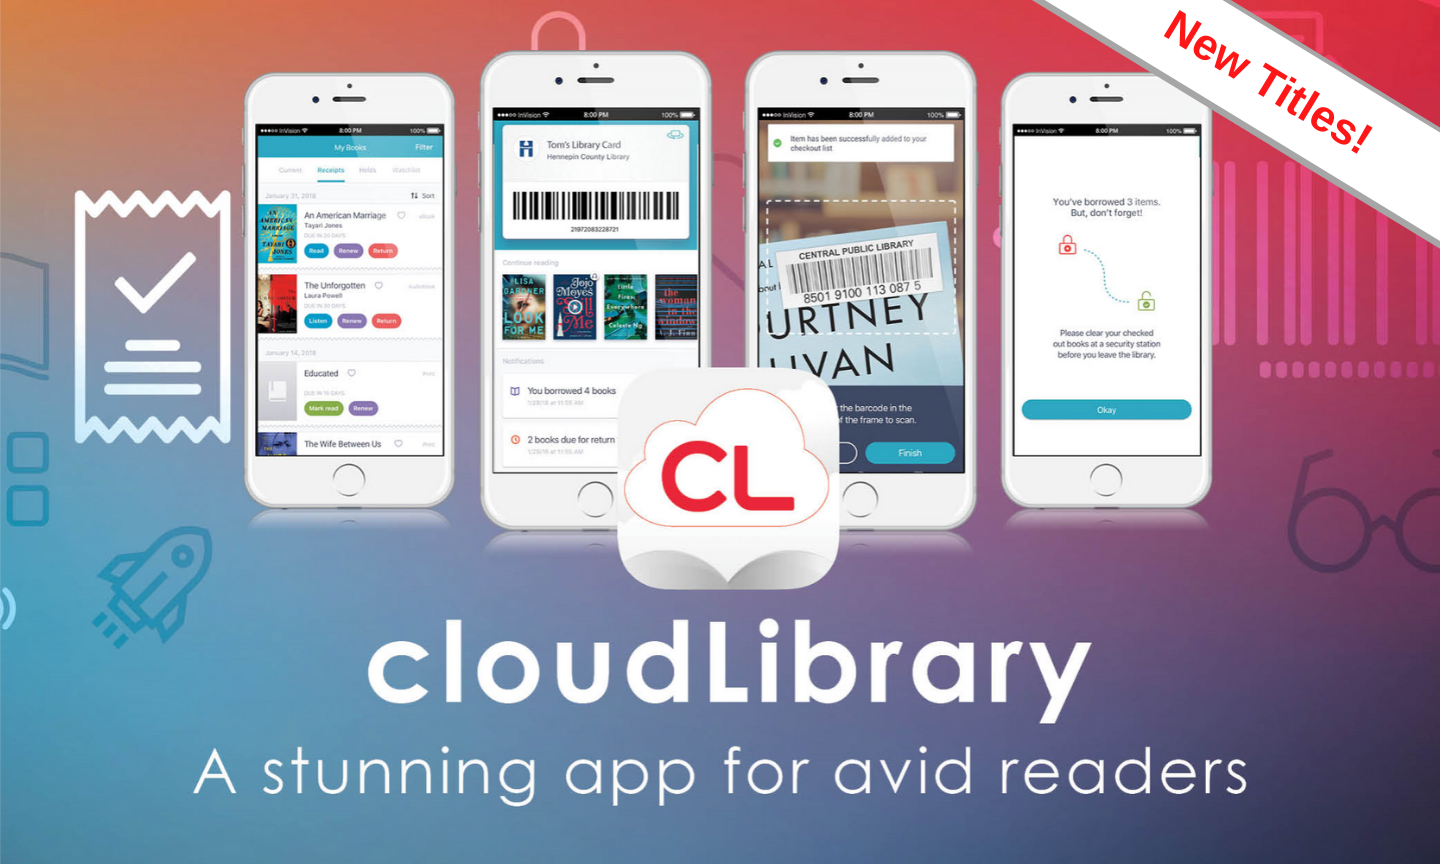 Free books with cloud library